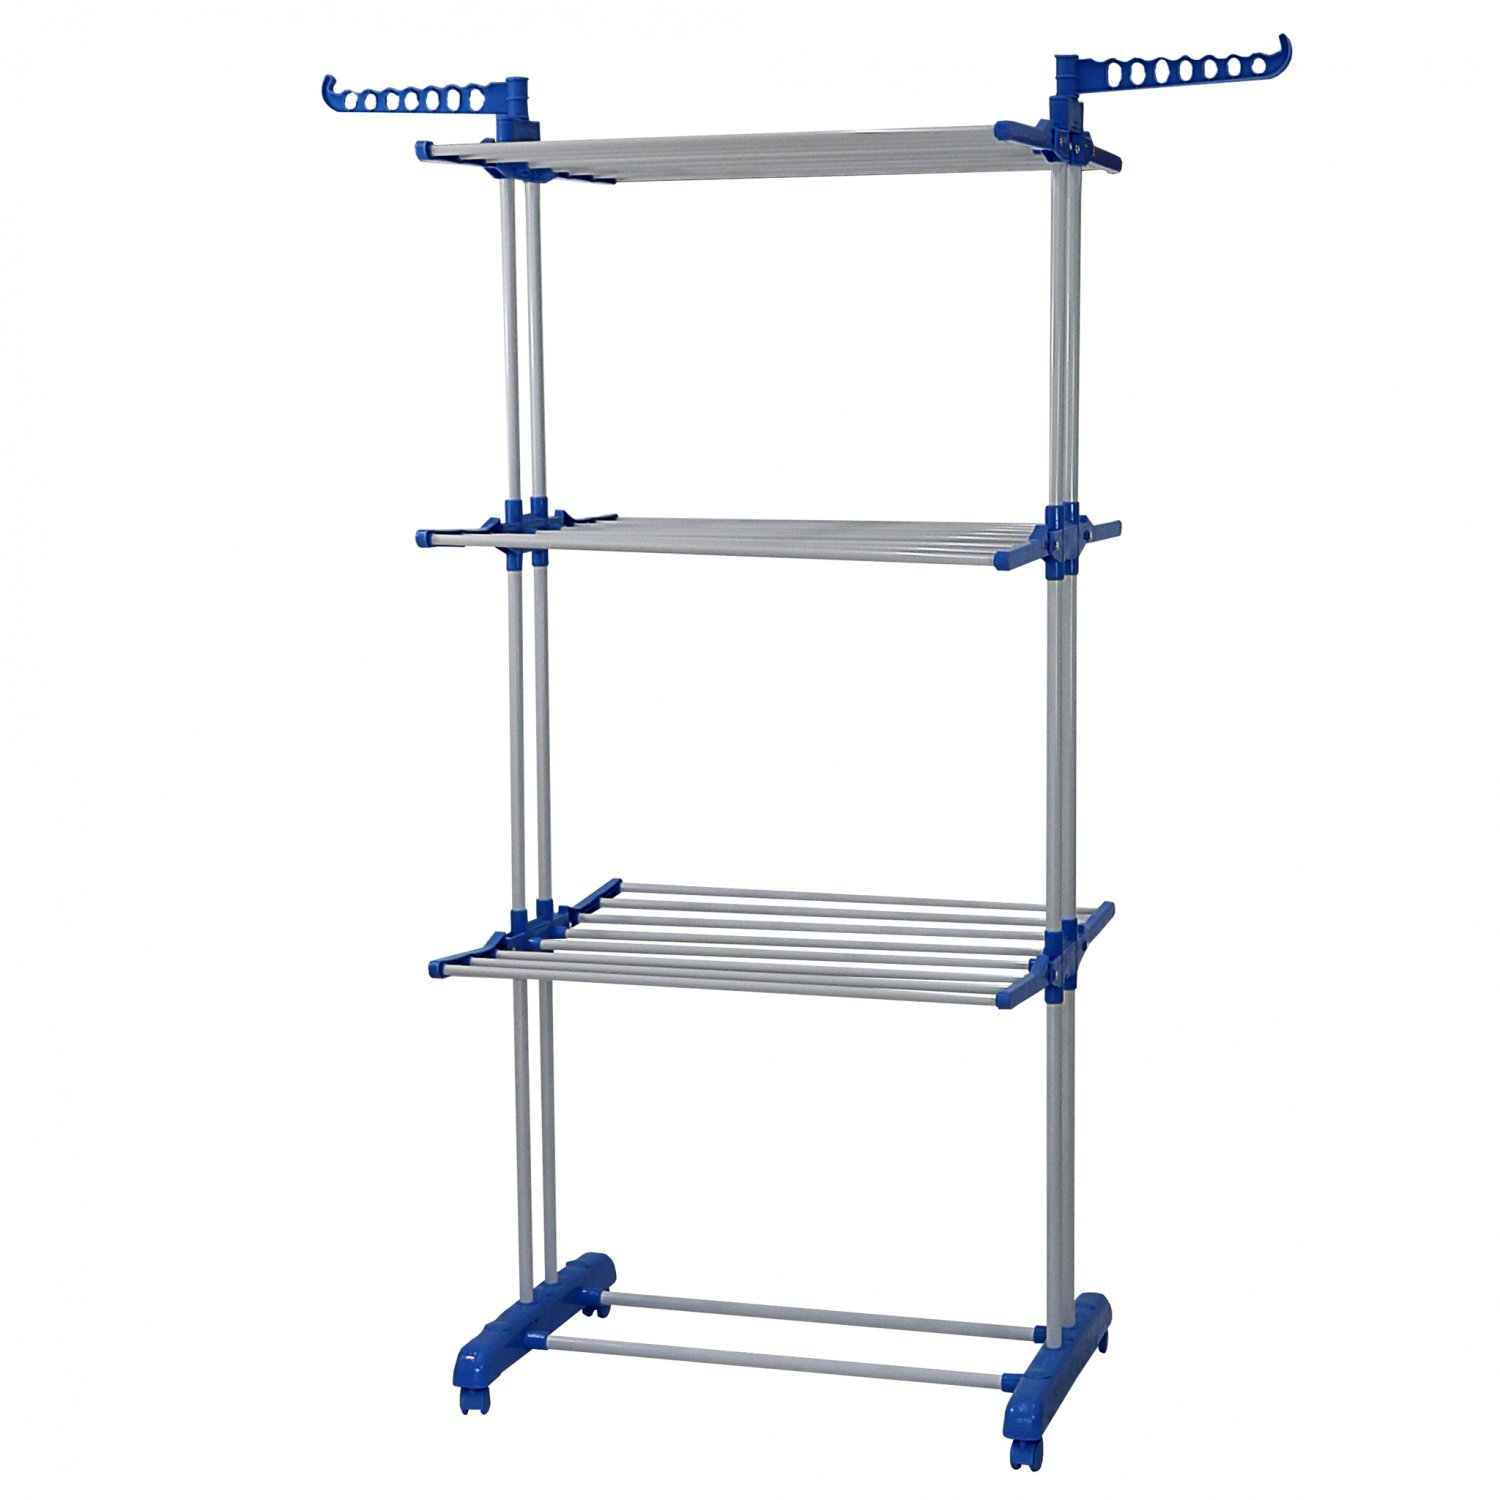 3 Tier Indoor Folding Clothes Airer Laundry Hanger Dryer